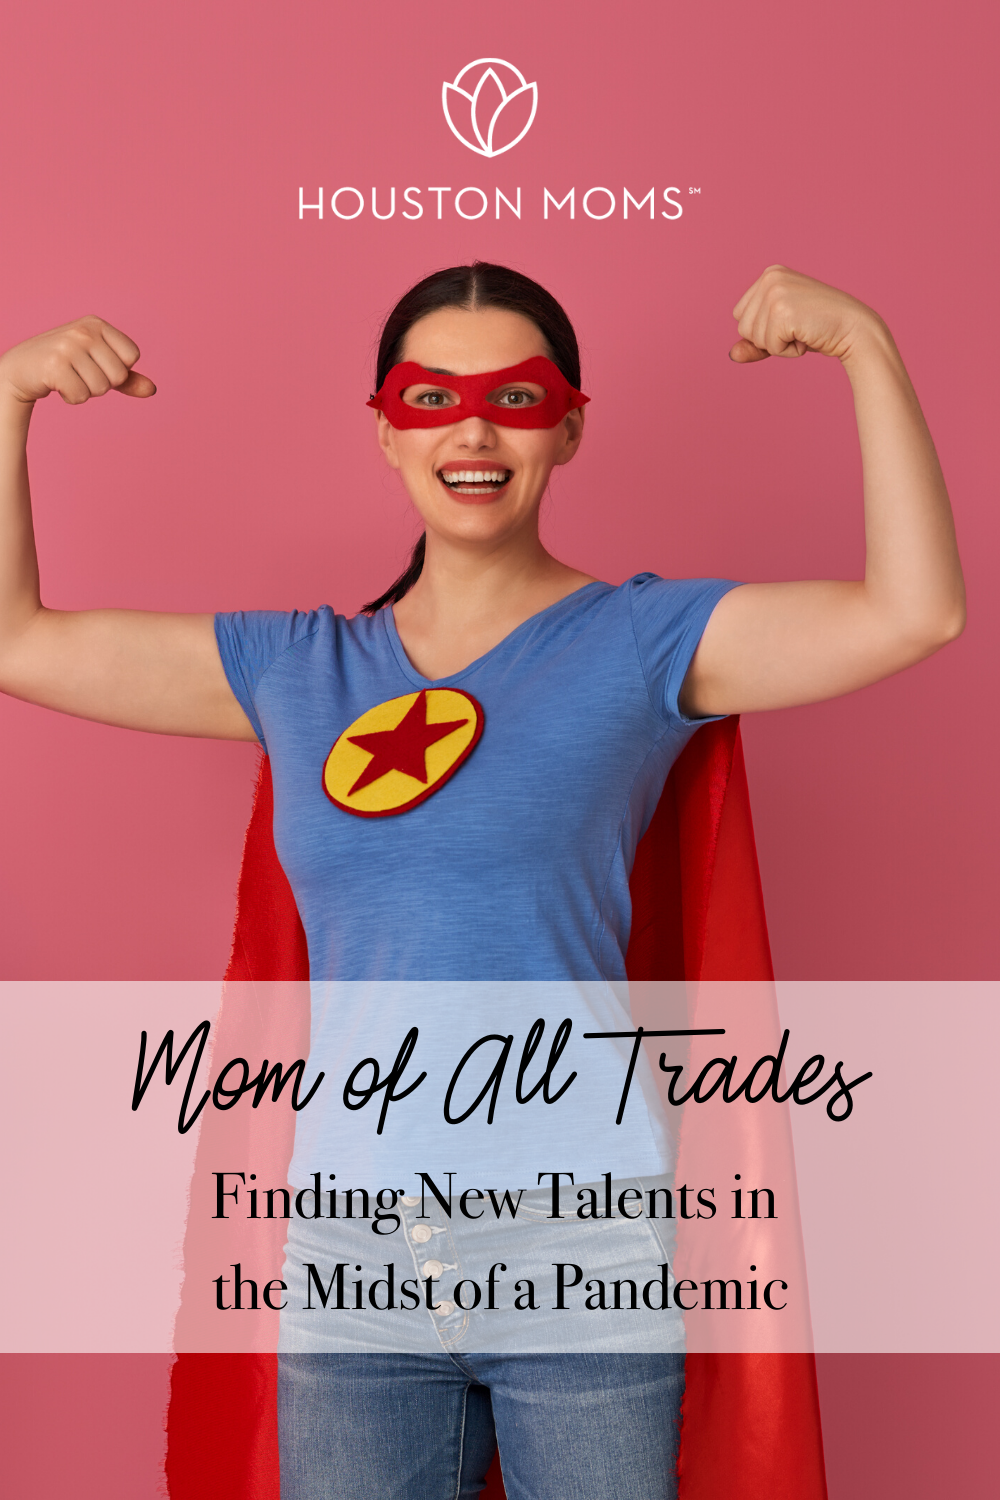 "Houston Moms ""Mom of All Trades:: Finding New Talents in the Midst of a Pandemic"" #houstonmoms #houstonmomsblog #momsaroundhouston"